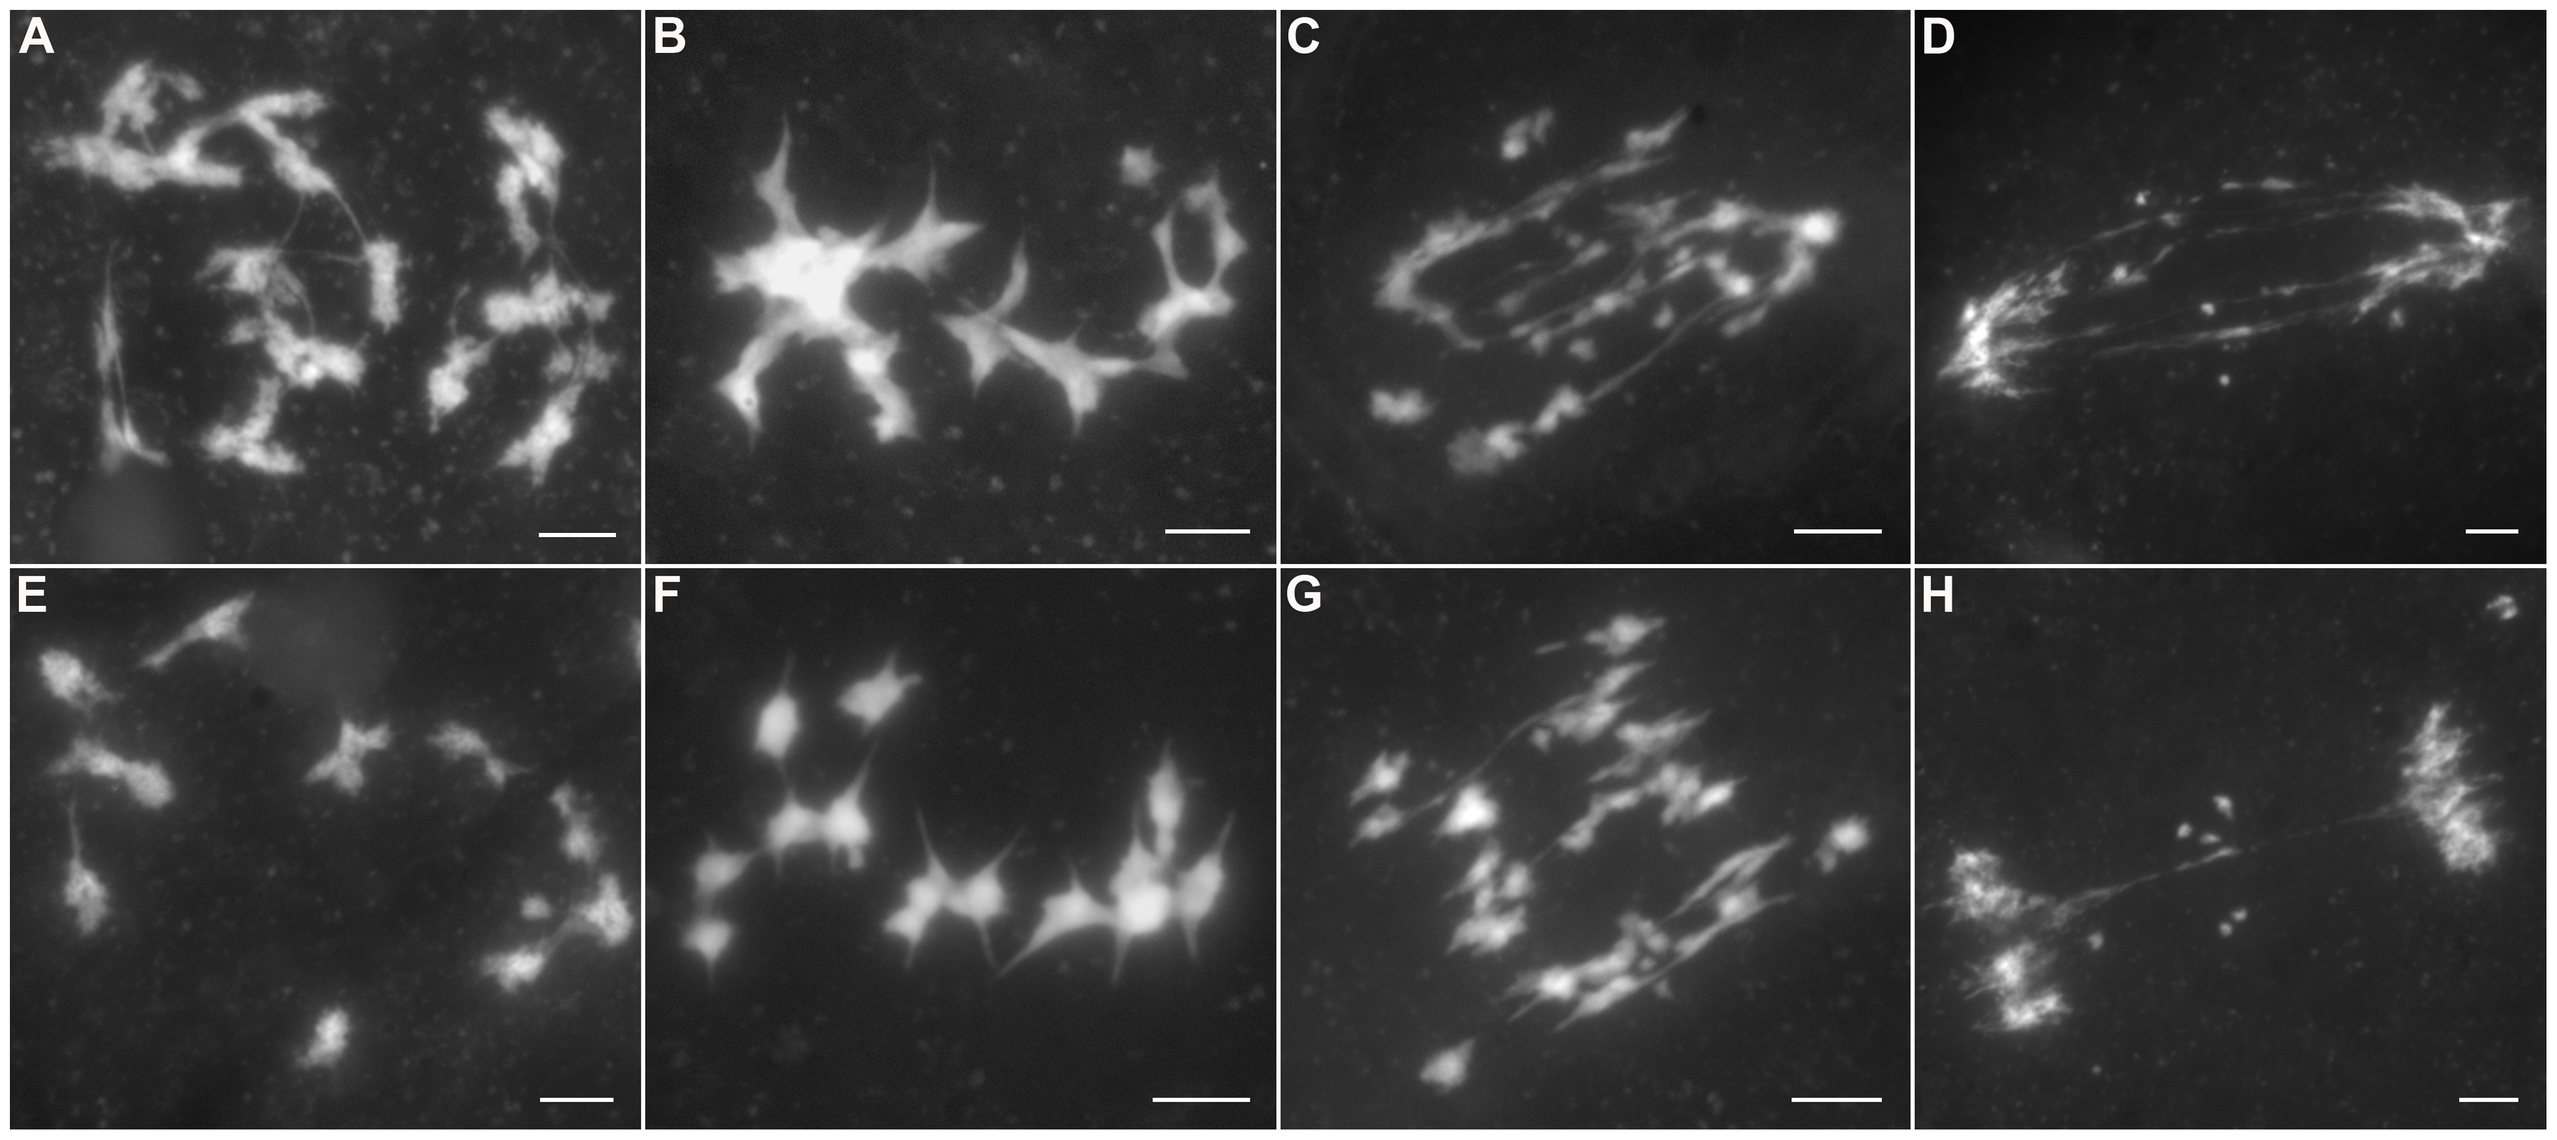 The aberrant chromosomal interactions in <i>Oshus1-1</i> resulted in multivalent associations and chromosome fragments.